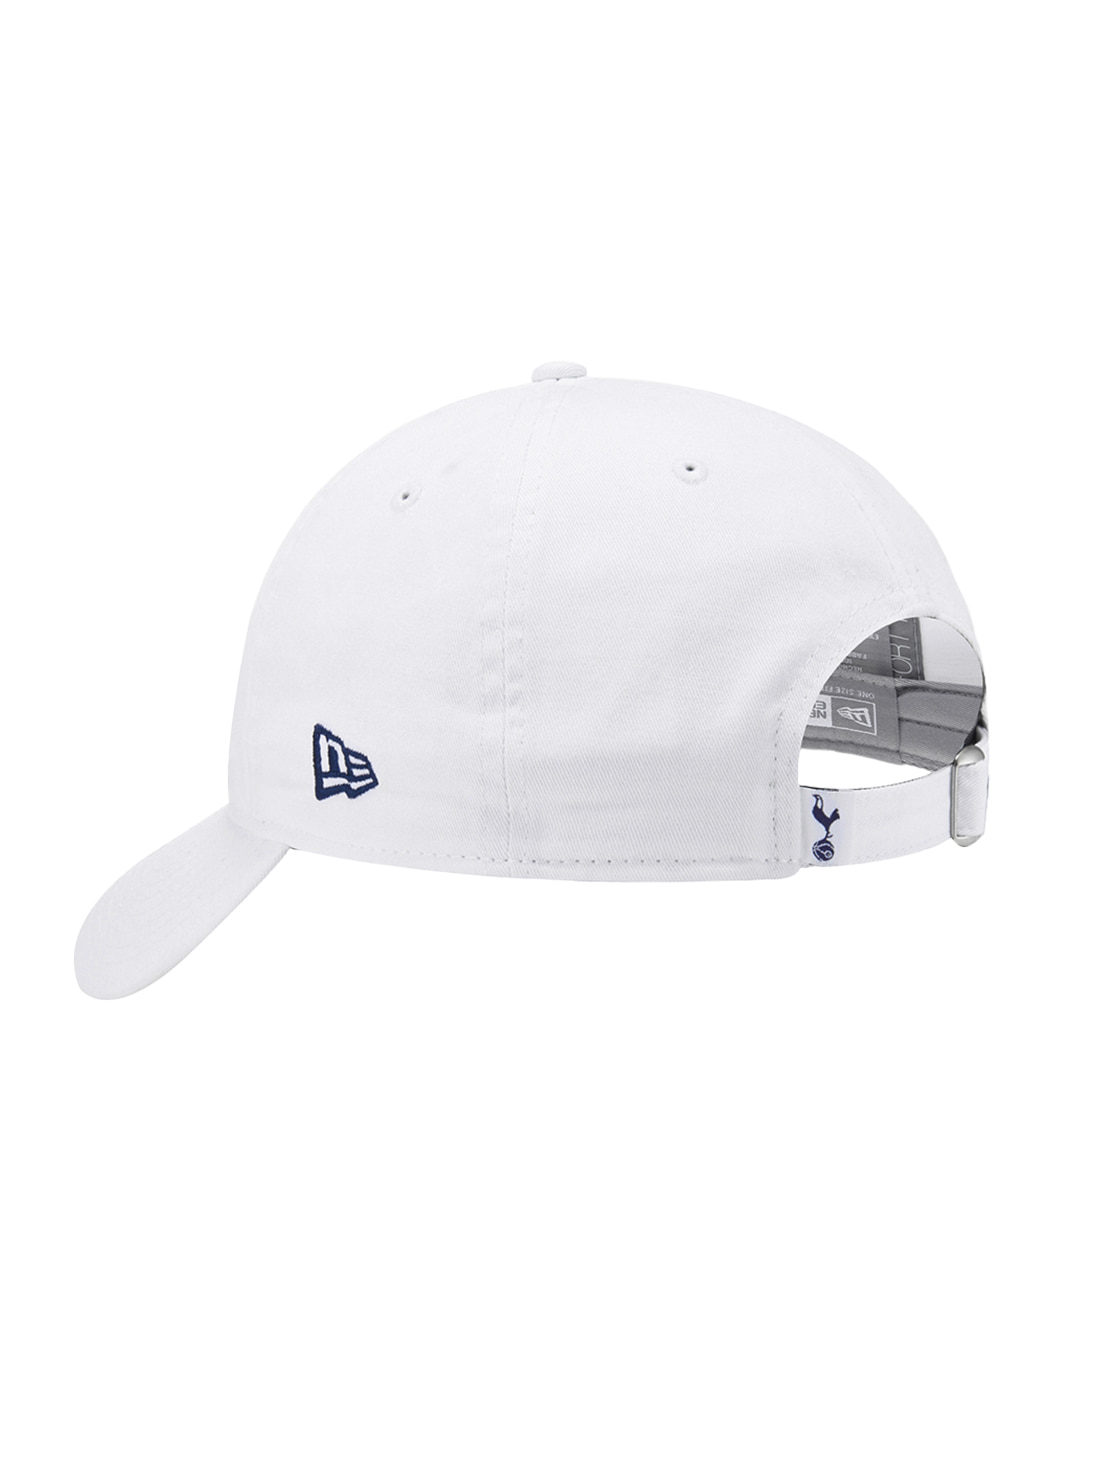 GOALSTUDIO TOTTENHAM 940UNST BALL CAP - WHITE